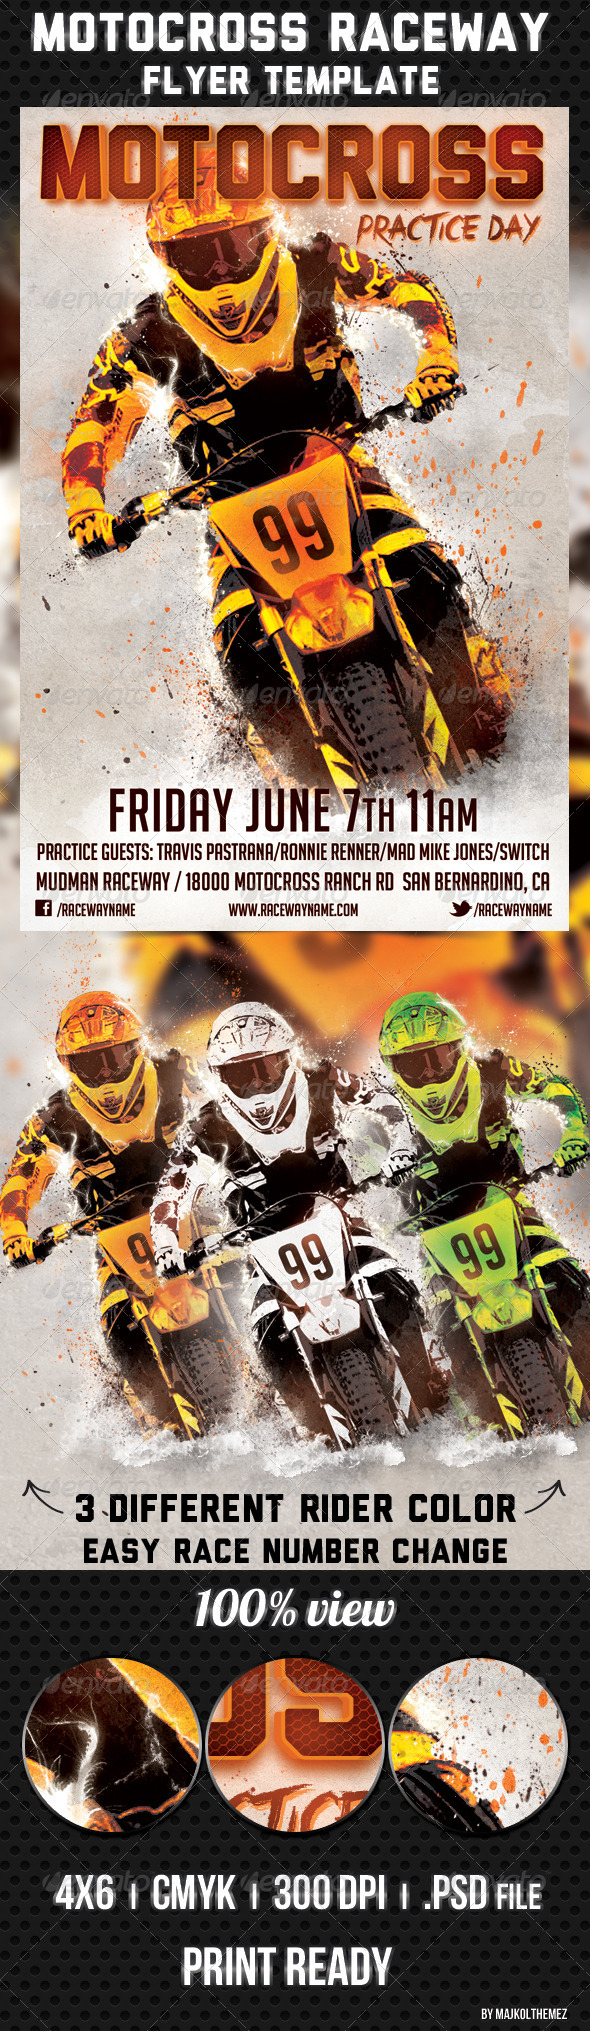 Motocross and Quad Raceway Flyer Template